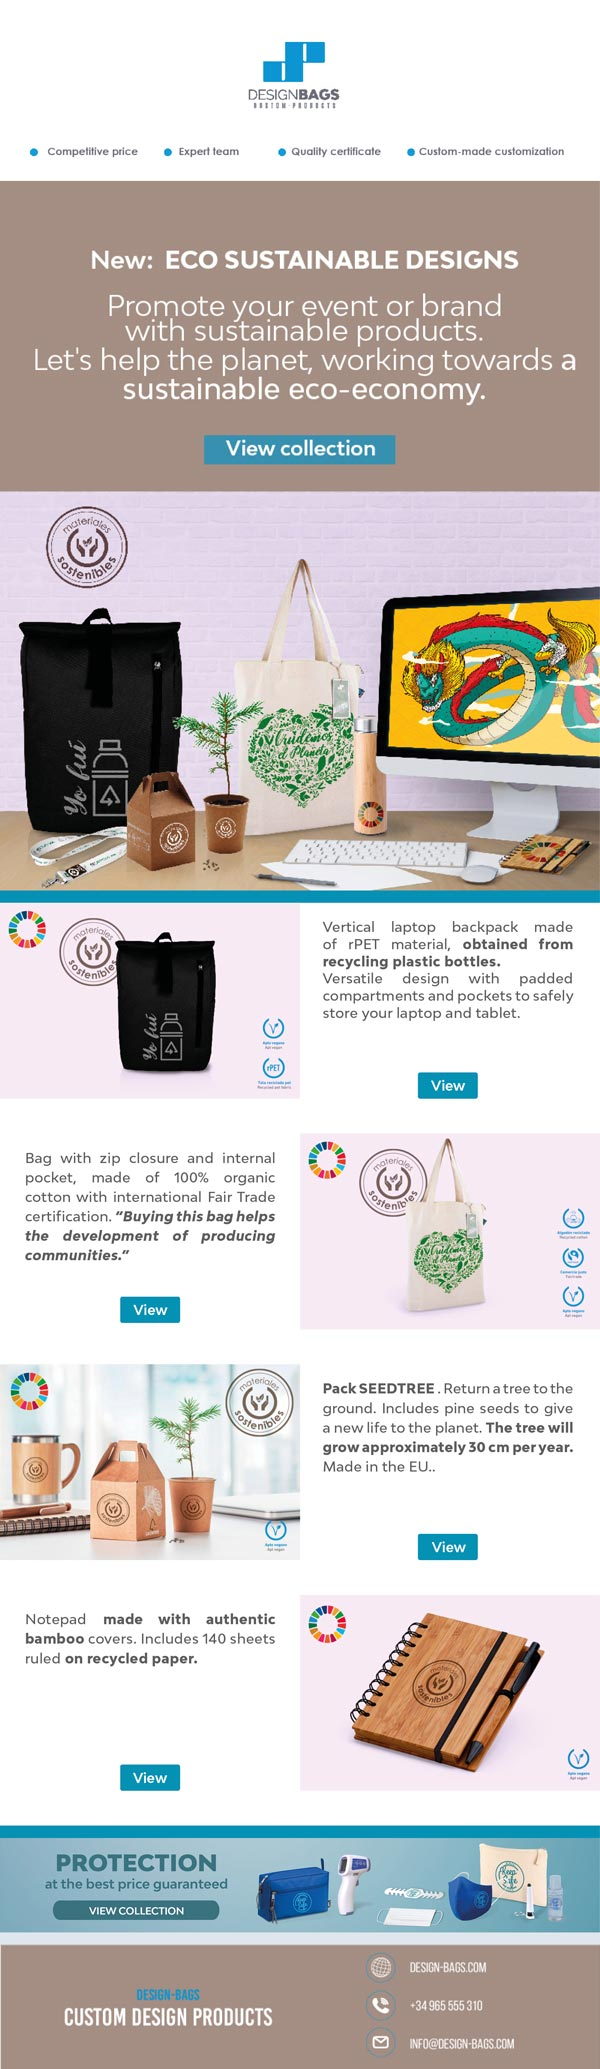 New sustainable products newsletter